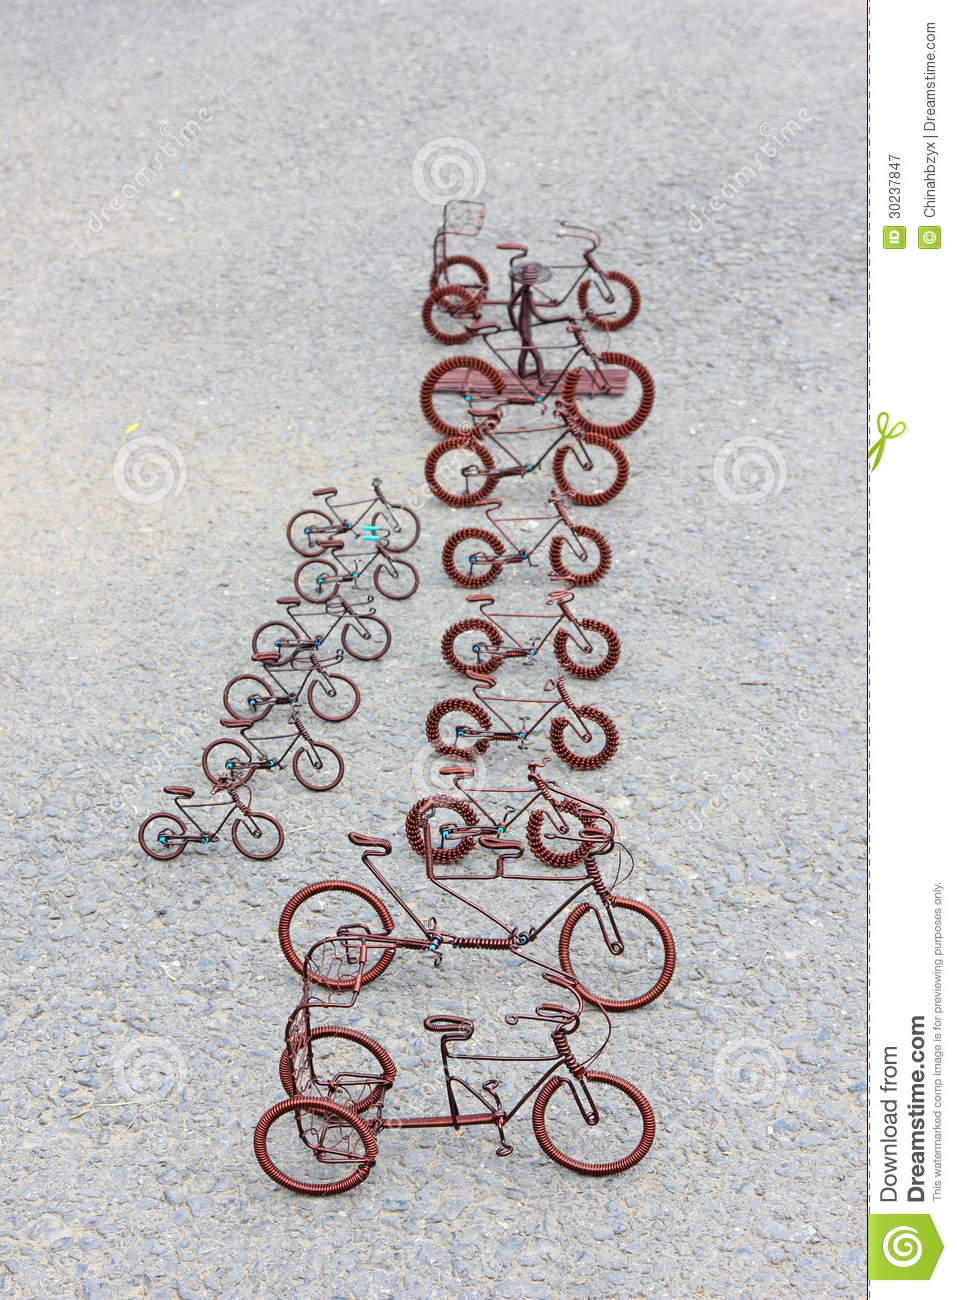 Toy Crafts Bicycle Made Of Copper Wire Stock Image - Image of brown ...